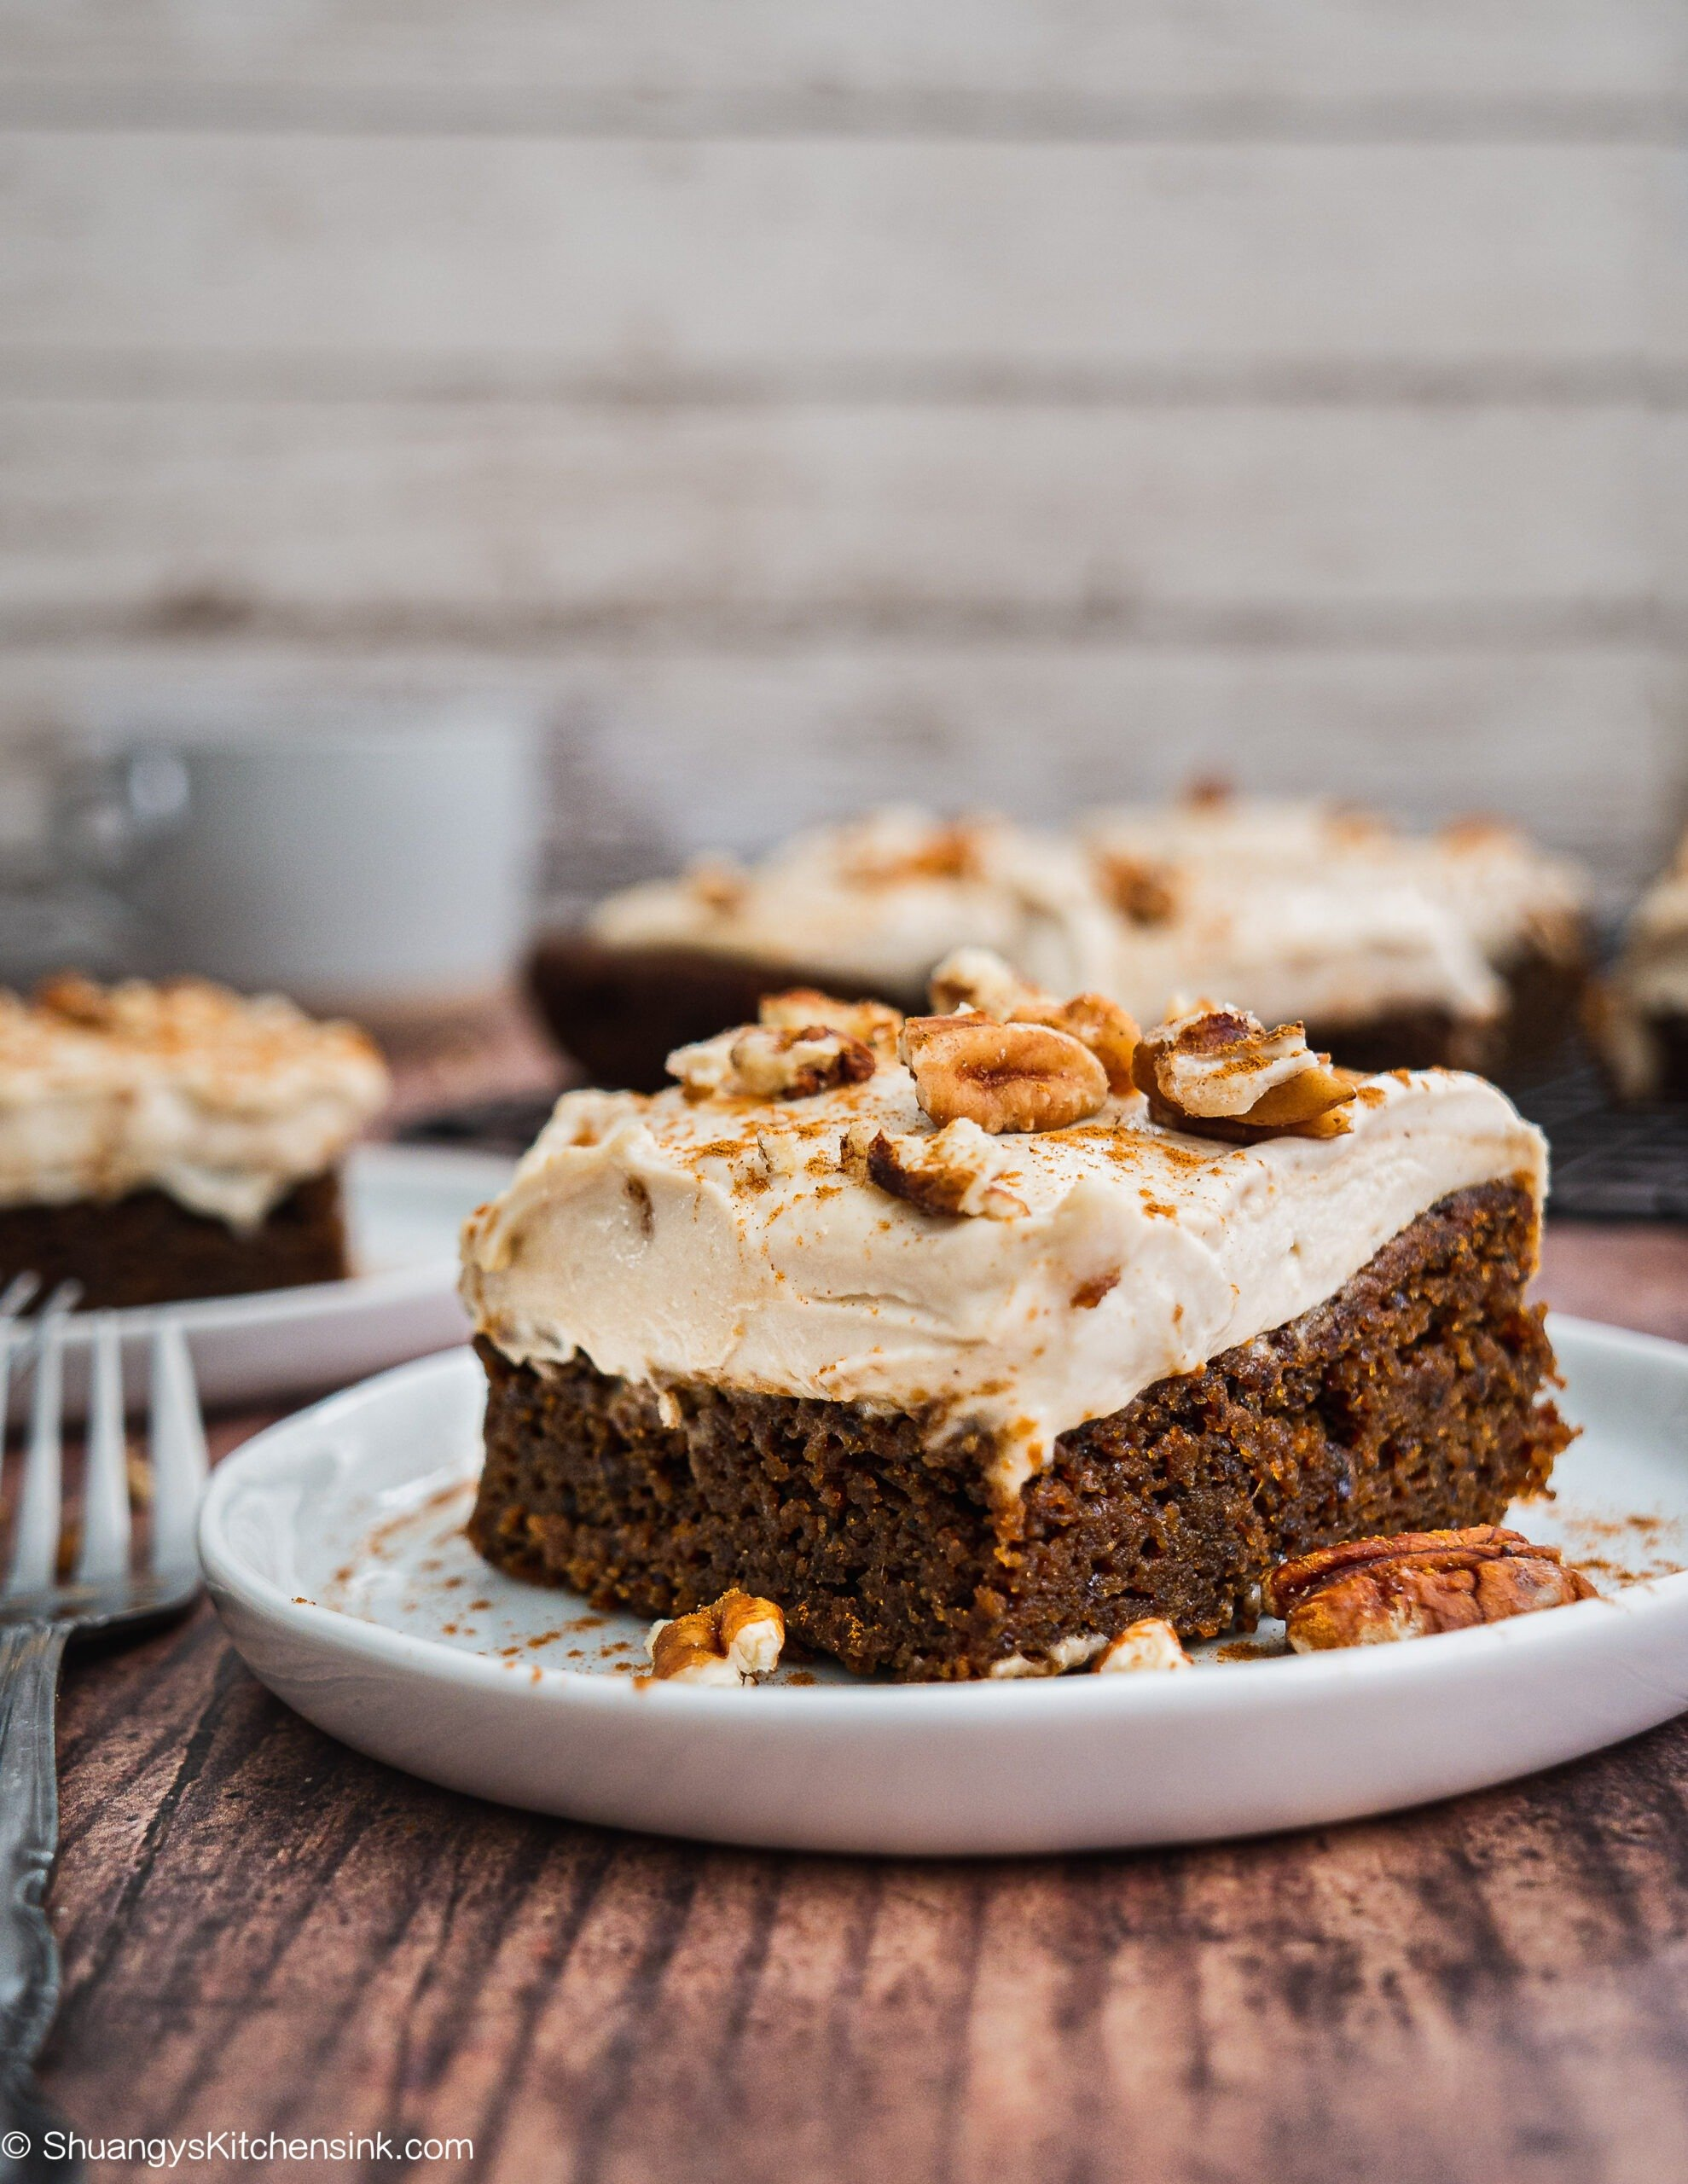 A piece of Vegan Gingerbread Cake with Cashew cream cheese with a sprinkle of pecans and cinnamon on top.